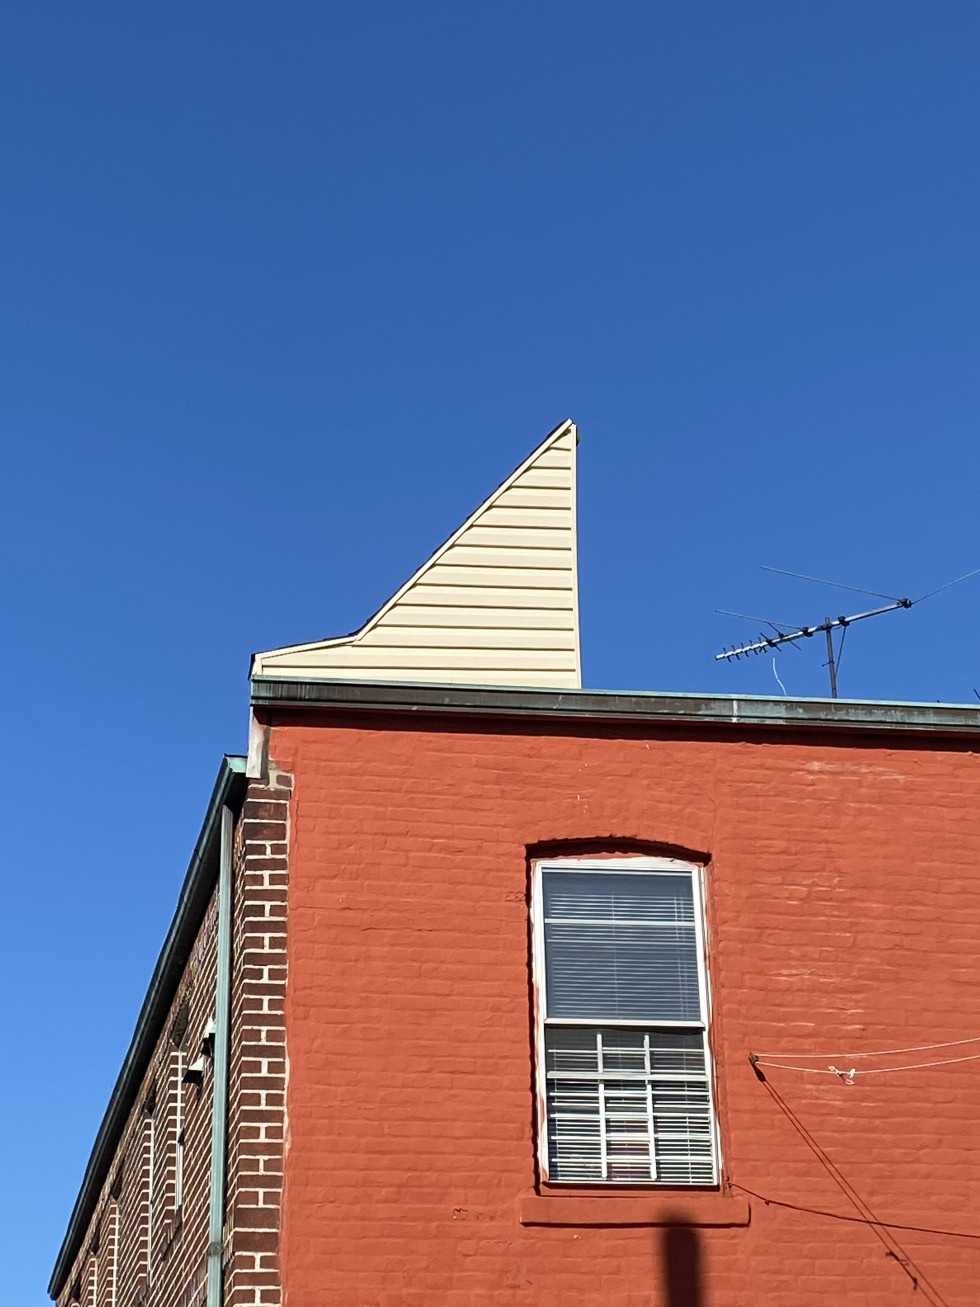 The back of a brick corner row house with a bright red painted wall against a deep blue sky, a triangular roof hatch with cream-colored vinyl siding sits on top of the building. The back window is in the bottom right corner of the image.